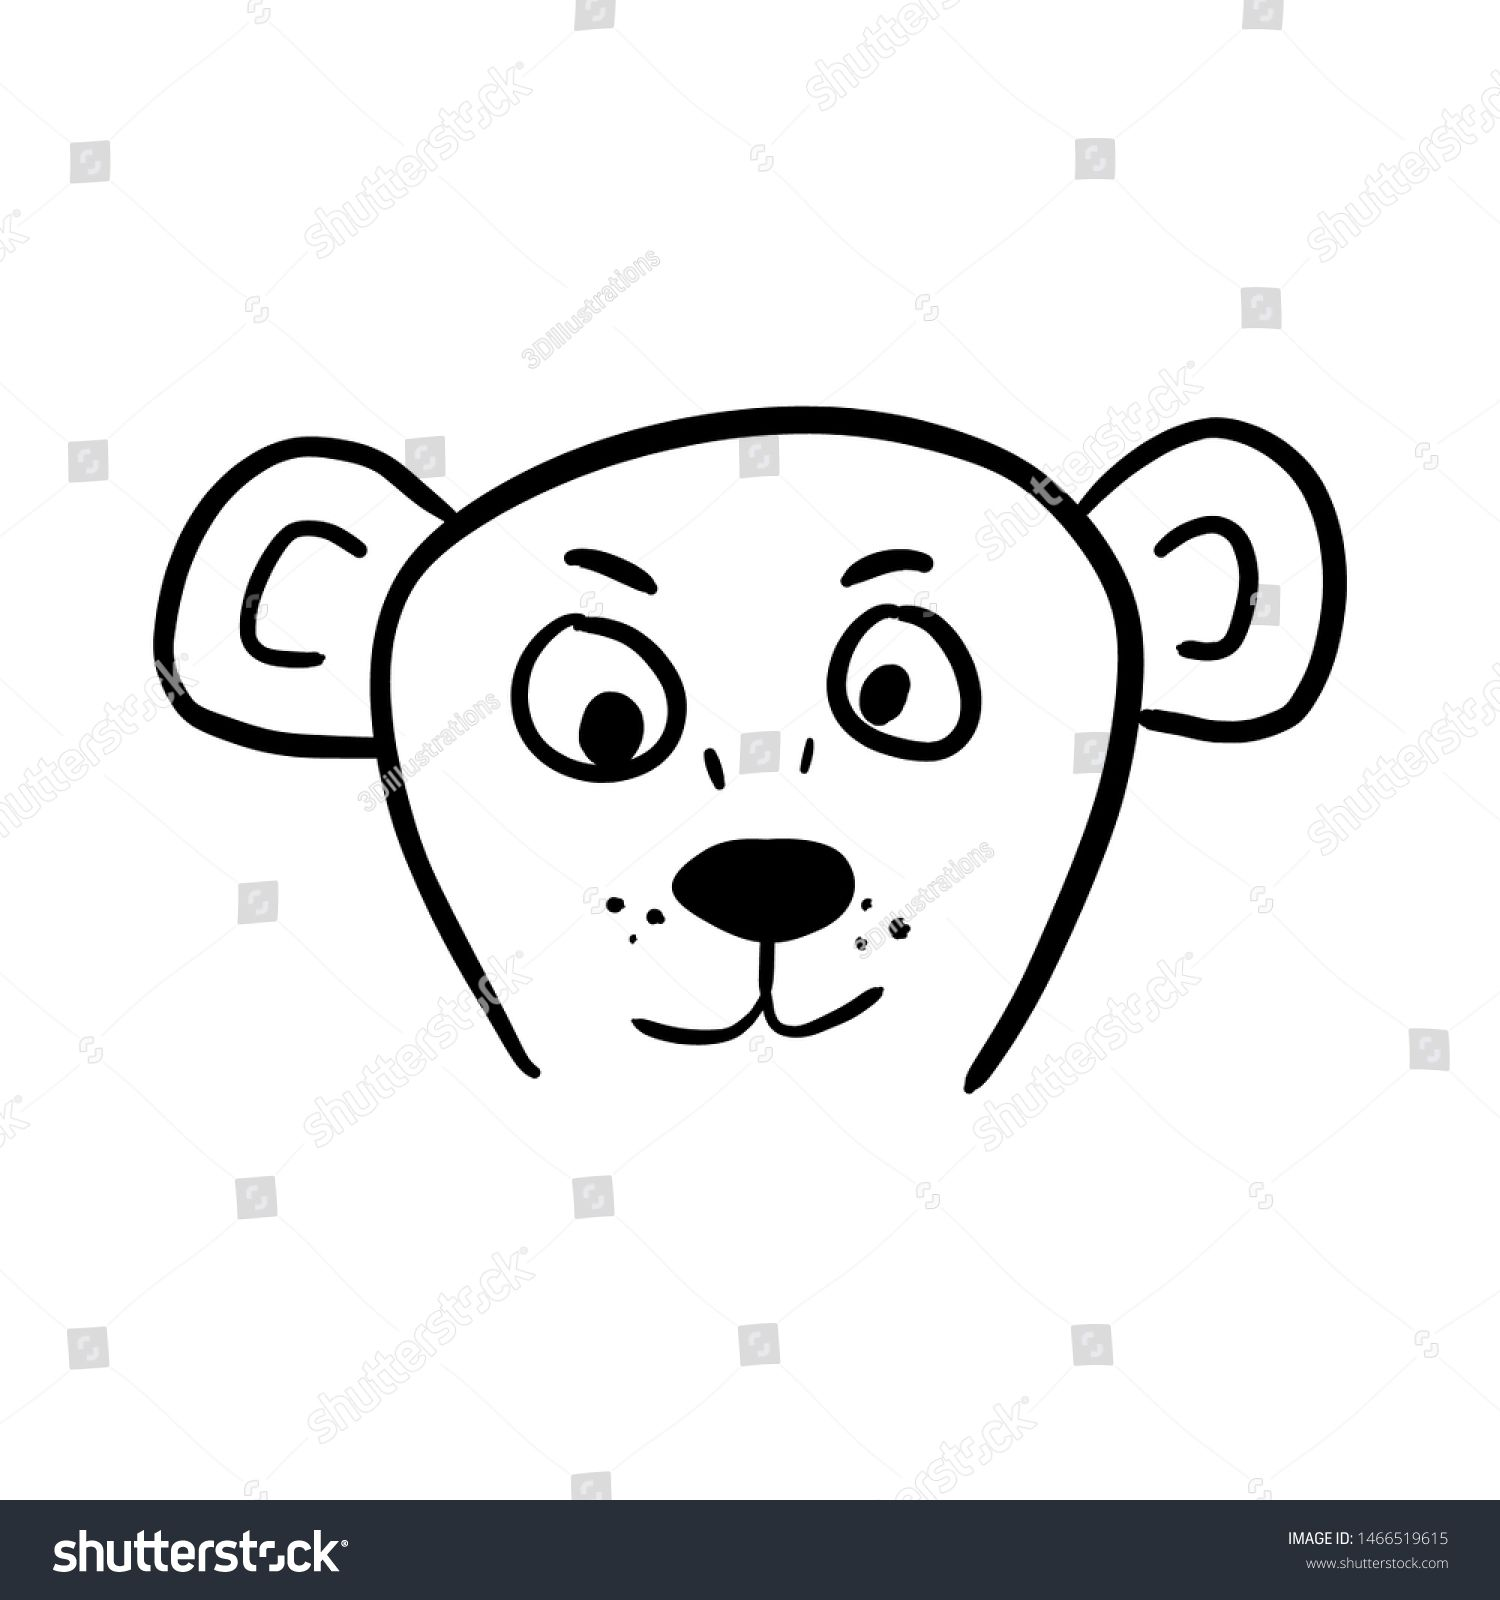 Head Of Cute Bear Character Hand Drawn Cartoon Vector Ink Illustration Isolated On White Background Digi Cartoon Art Drawing Ink Illustrations Bear Character